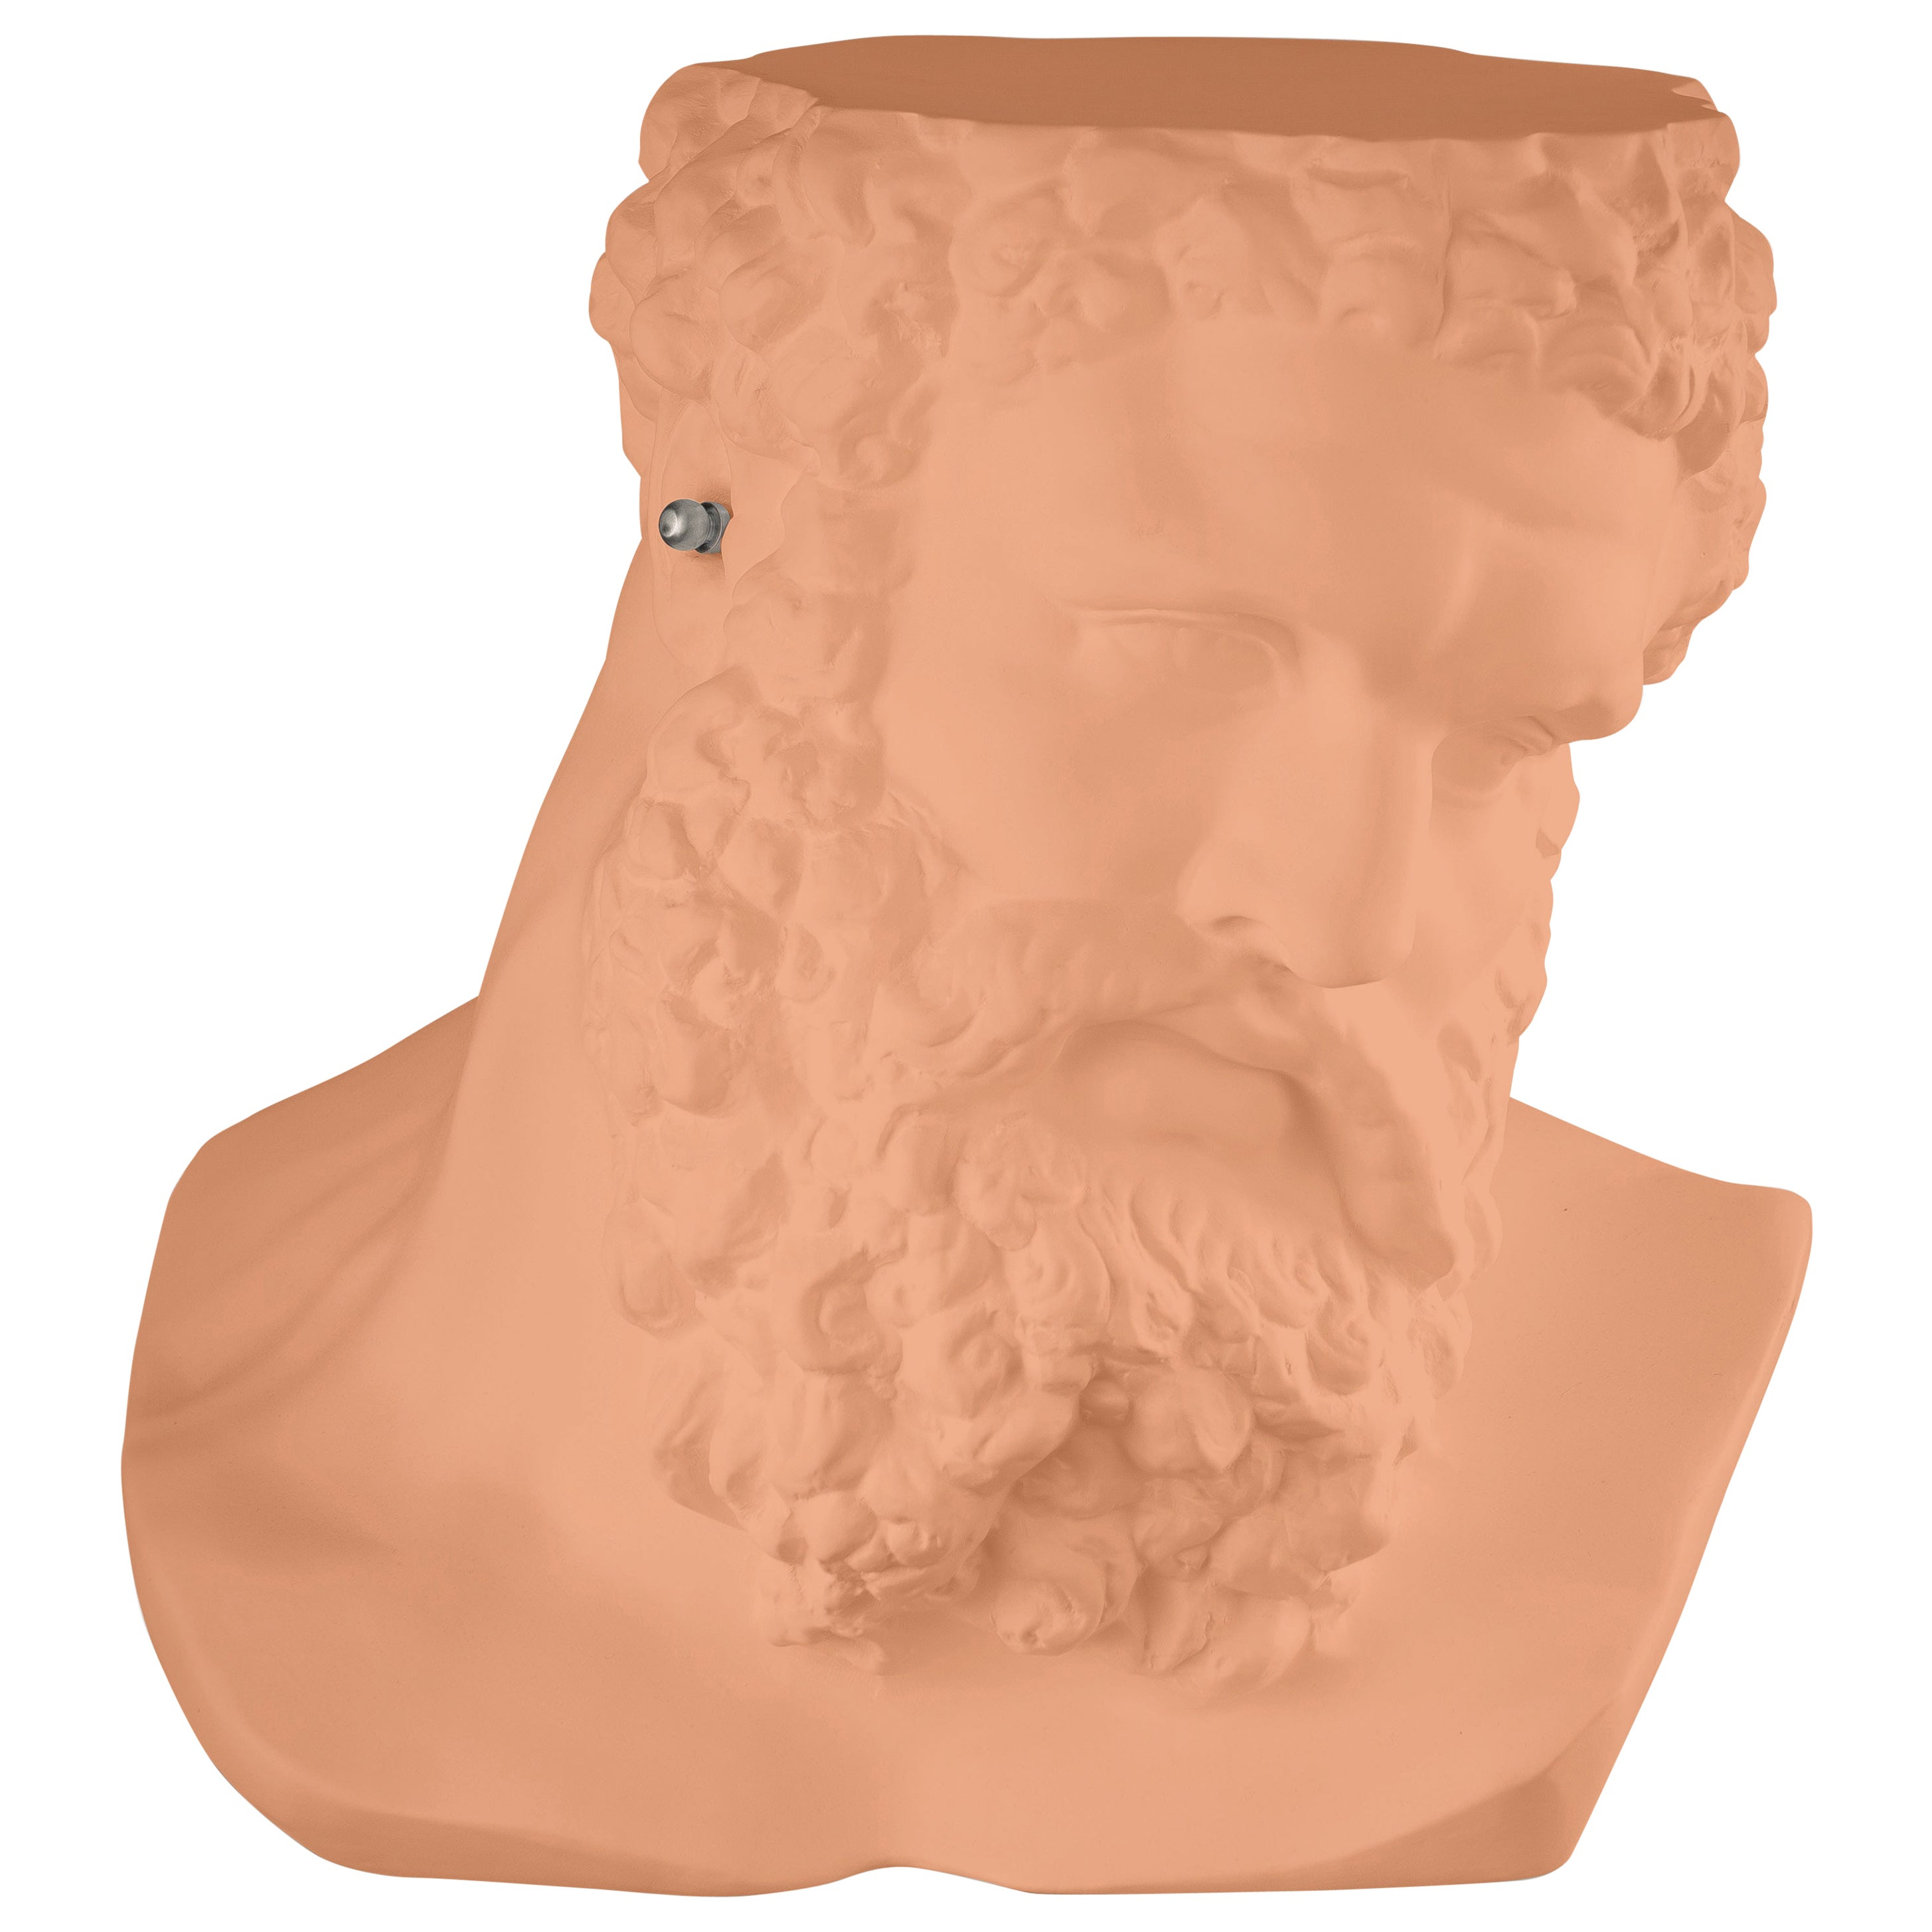 """Bust Ercole""""Don't Hear"""", Small Table/Sculpture, Ceramic, Cantaloupe Color, Italy"""